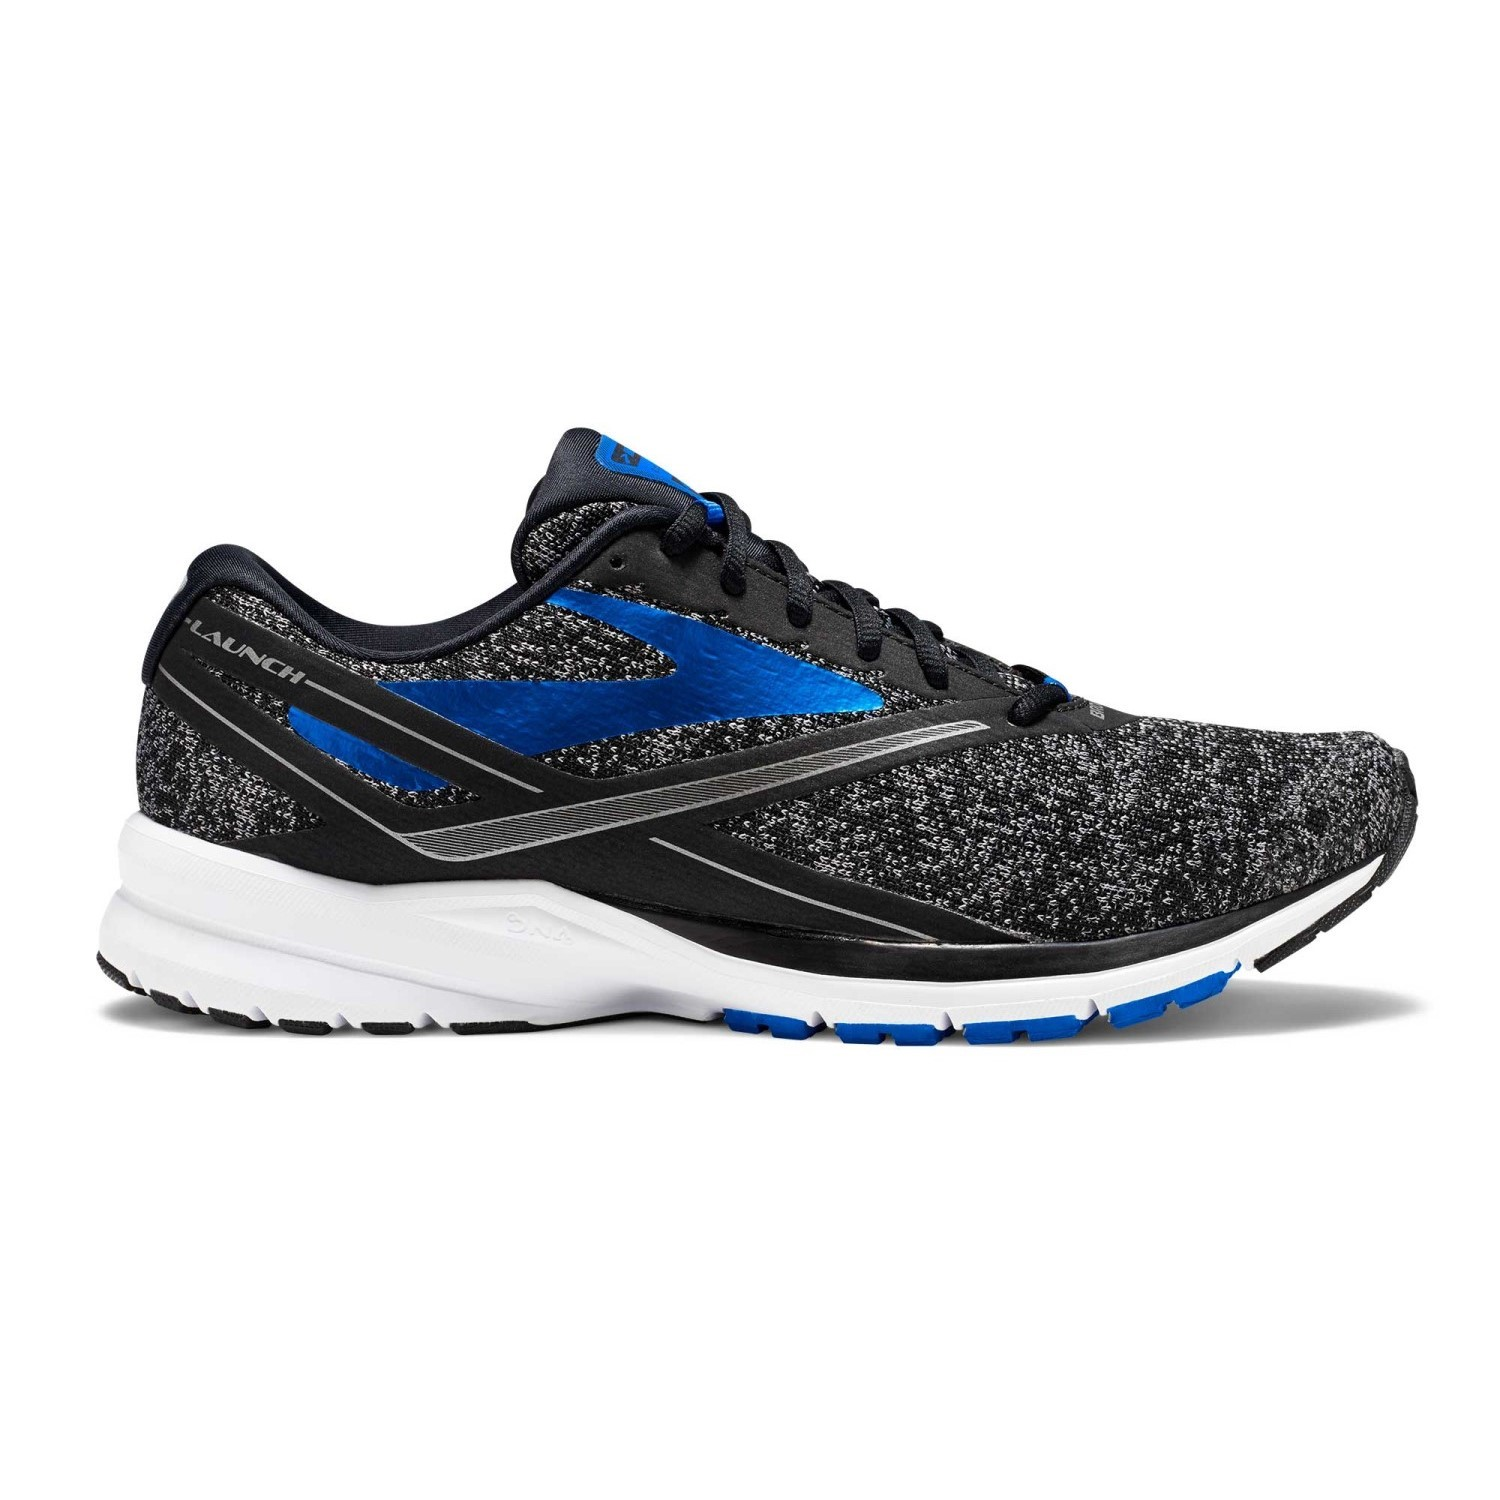 948e82ea02c62 Brooks Knitted Launch 4 - Mens Running Shoes - Black Anthracite Electric  Brooks Blue